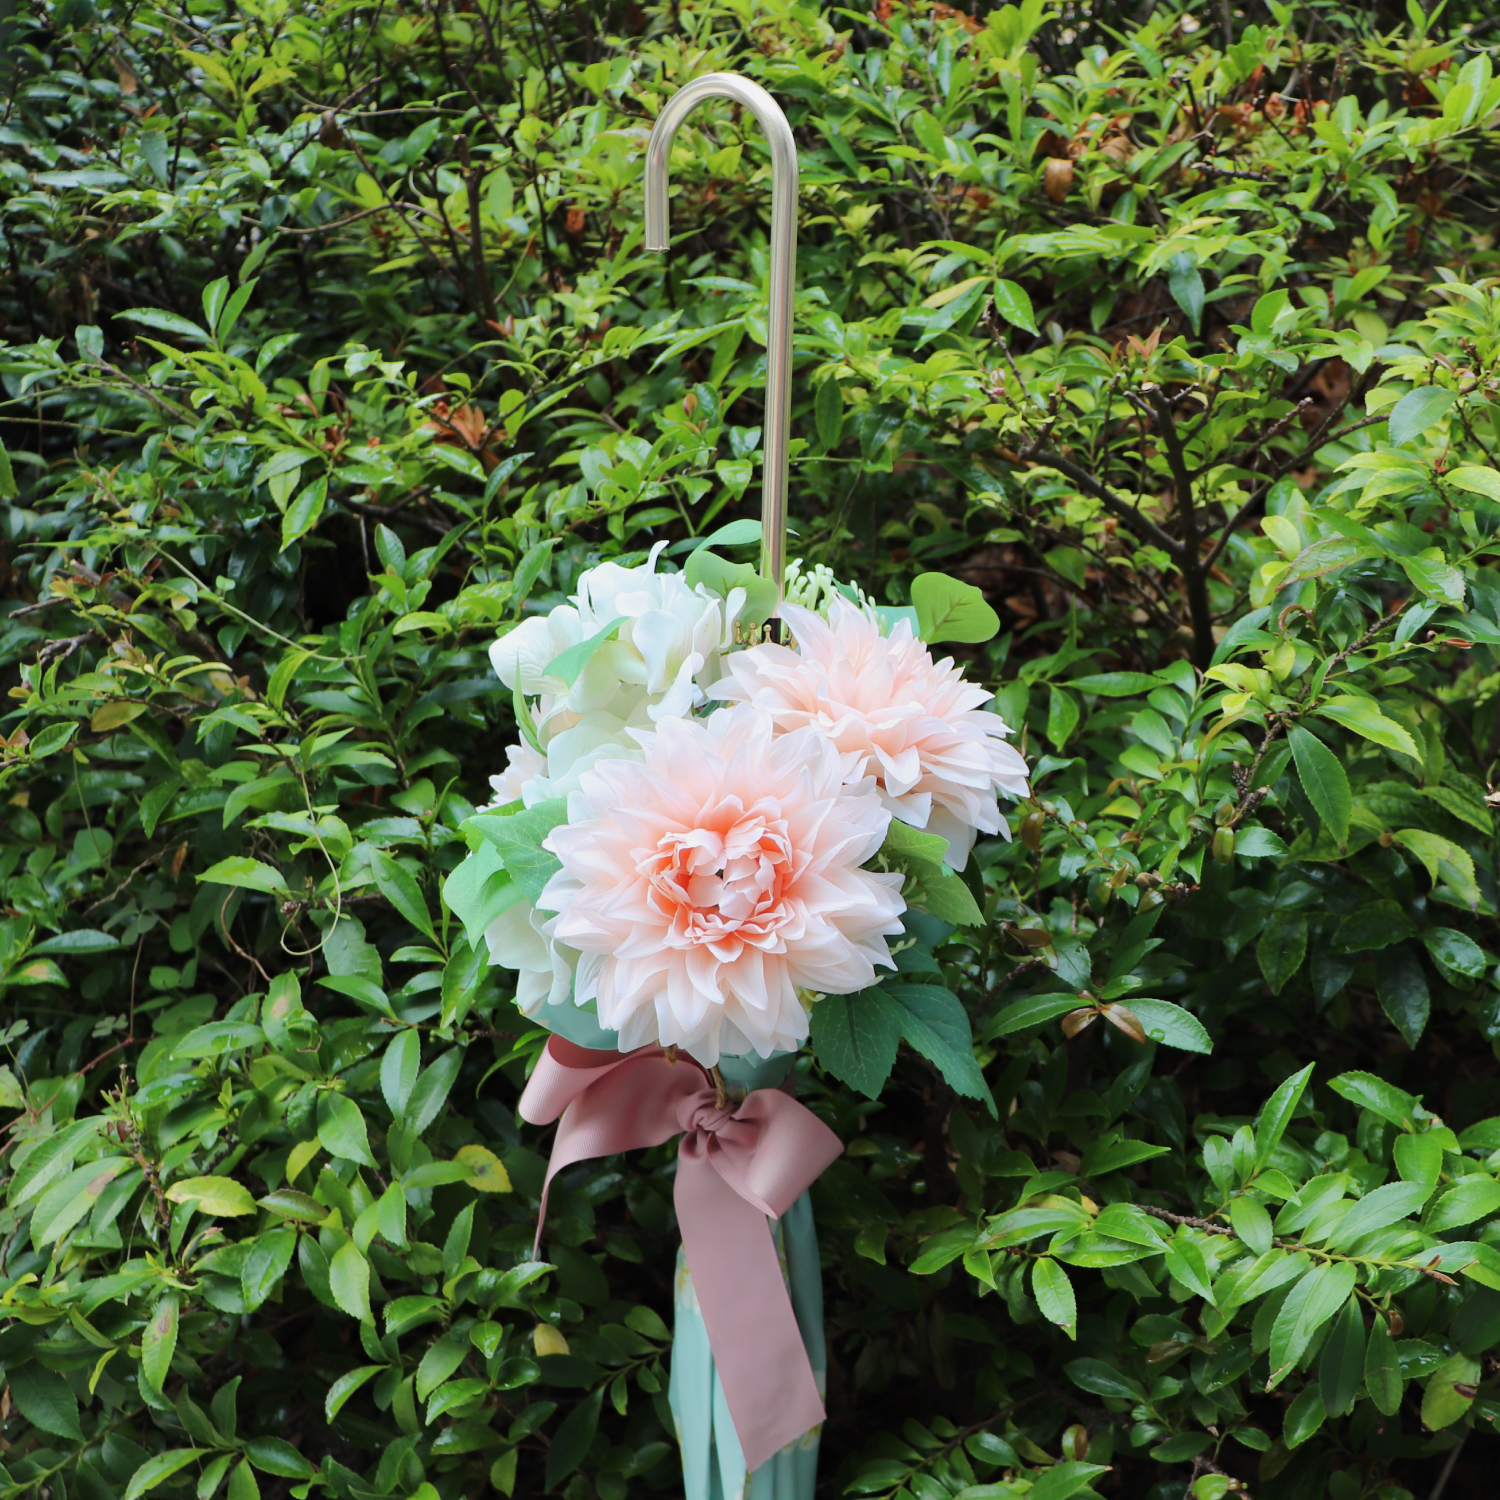 <img class='new_mark_img1' src='https://img.shop-pro.jp/img/new/icons14.gif' style='border:none;display:inline;margin:0px;padding:0px;width:auto;' />【生花】 Umbrella Bouquet|Scarf-Pink